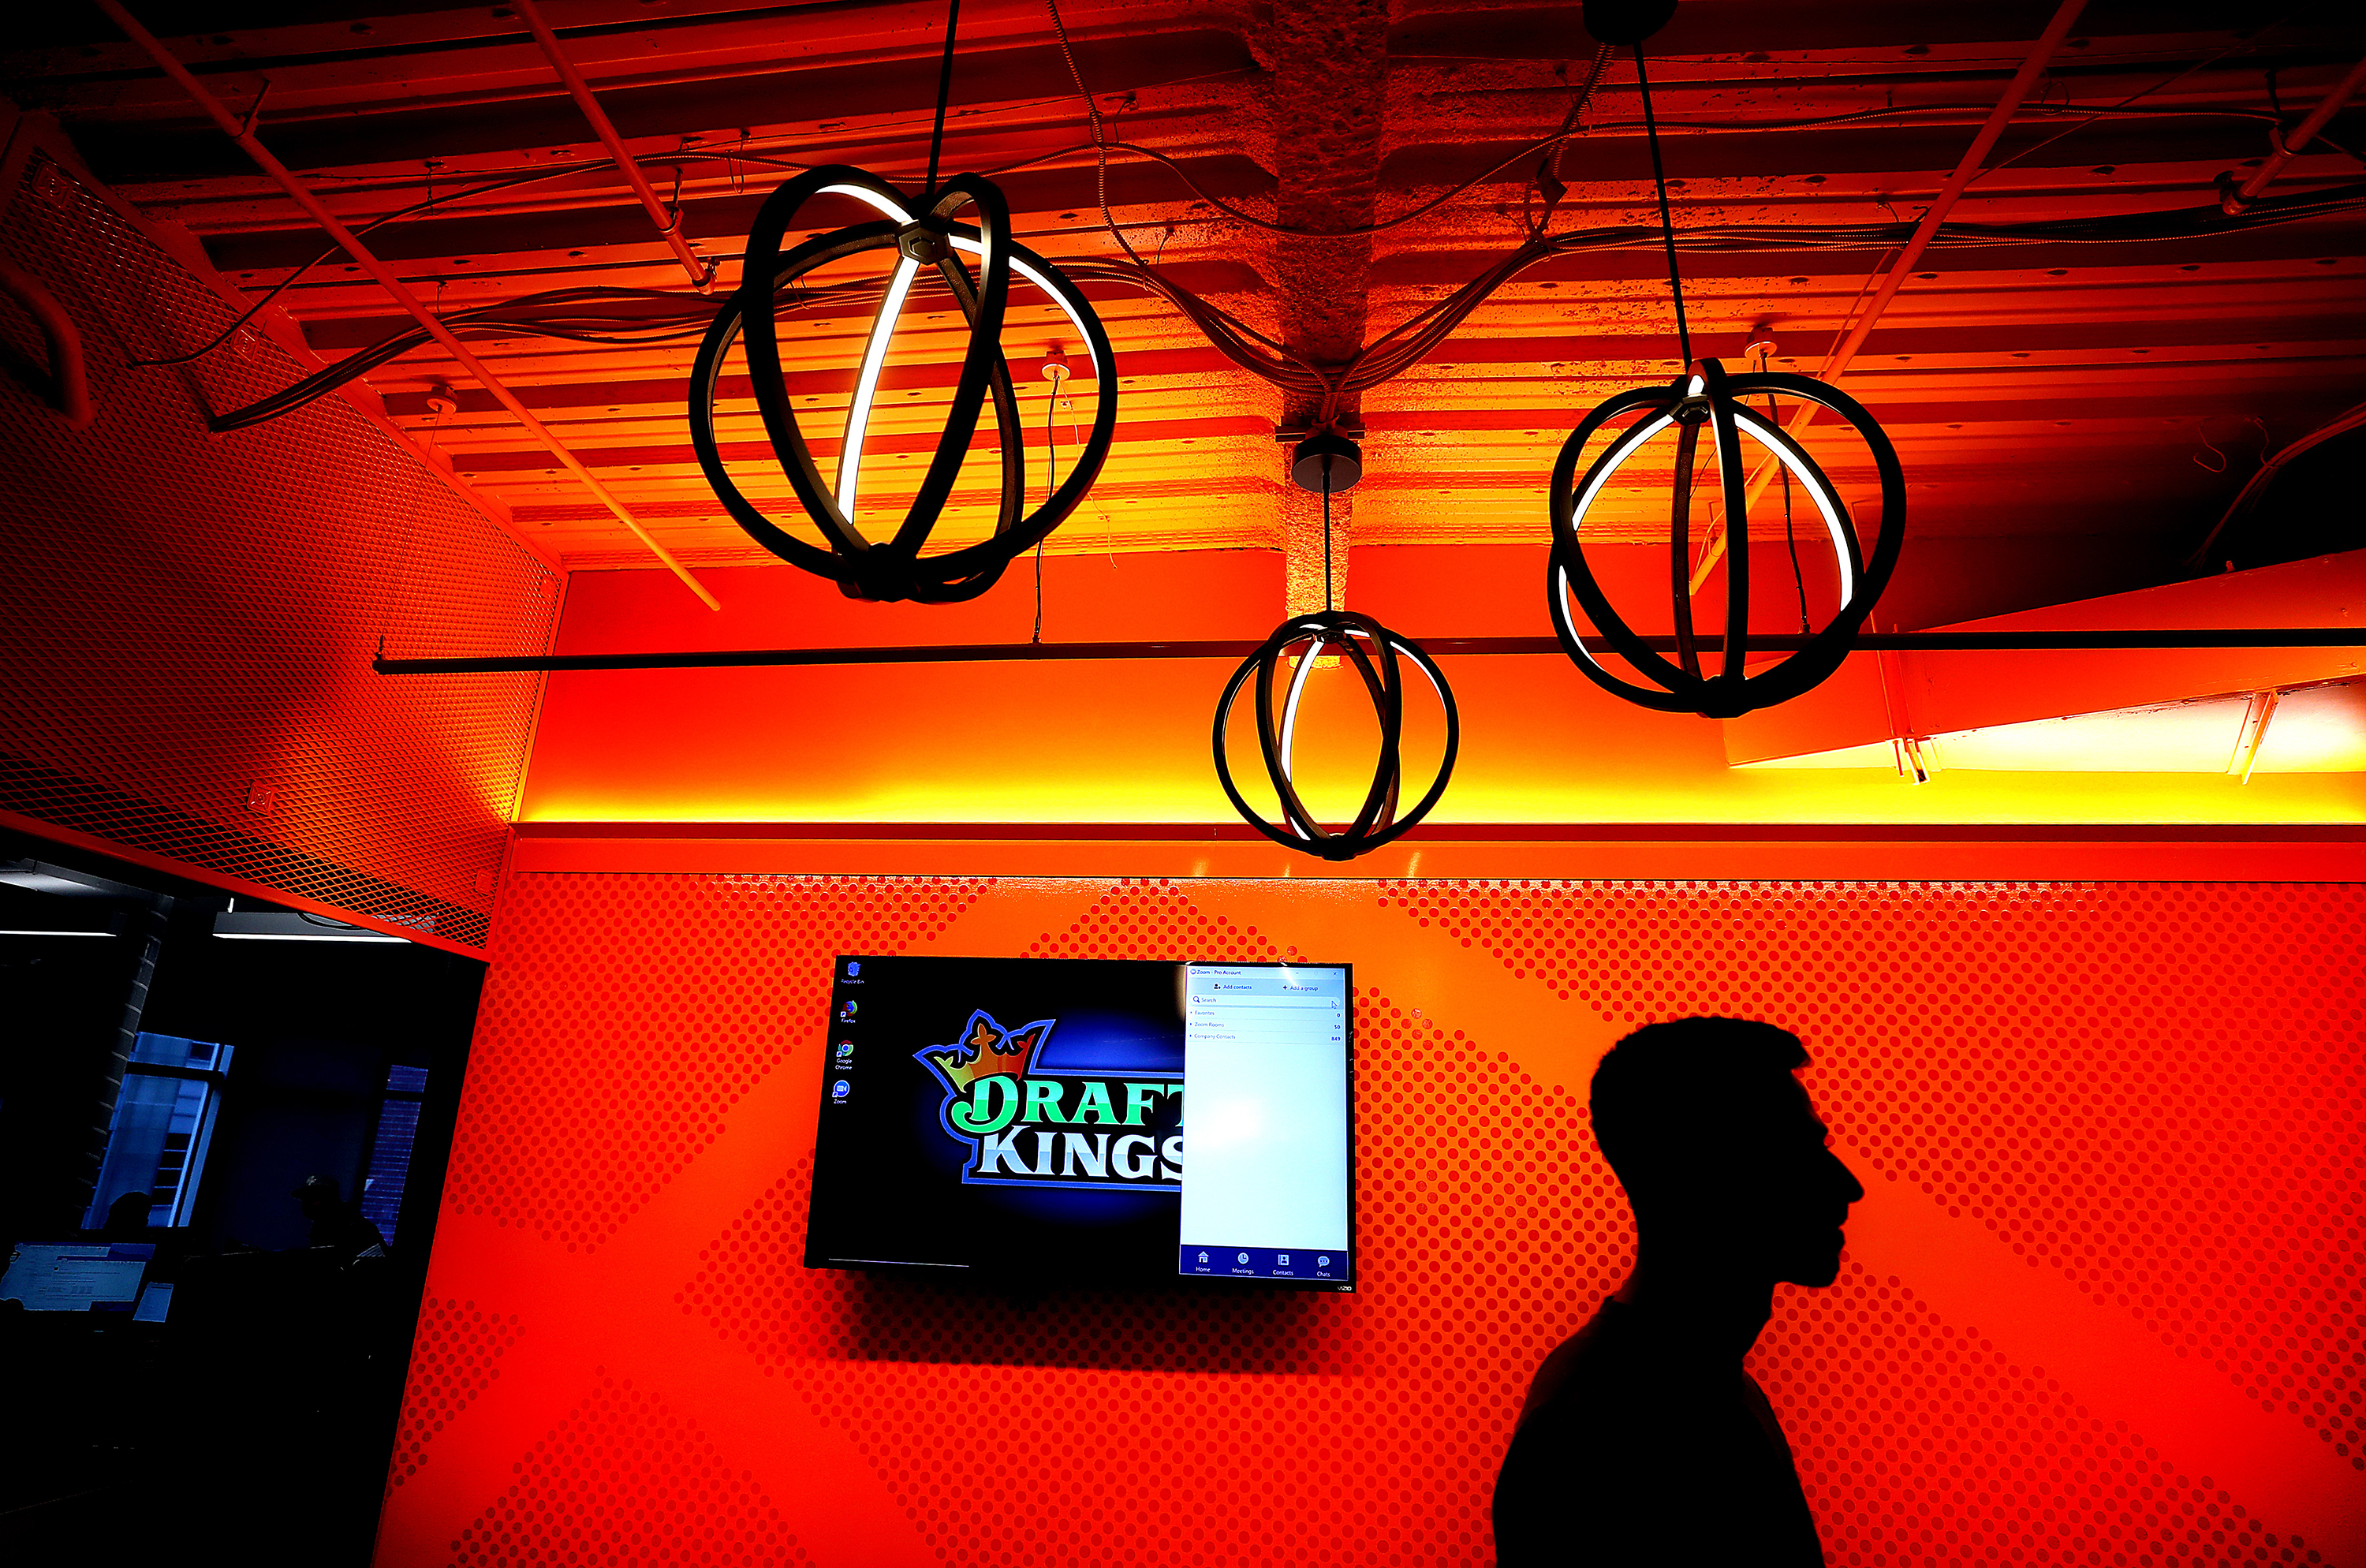 DraftKings stock soars on hopes for live sports returning soon